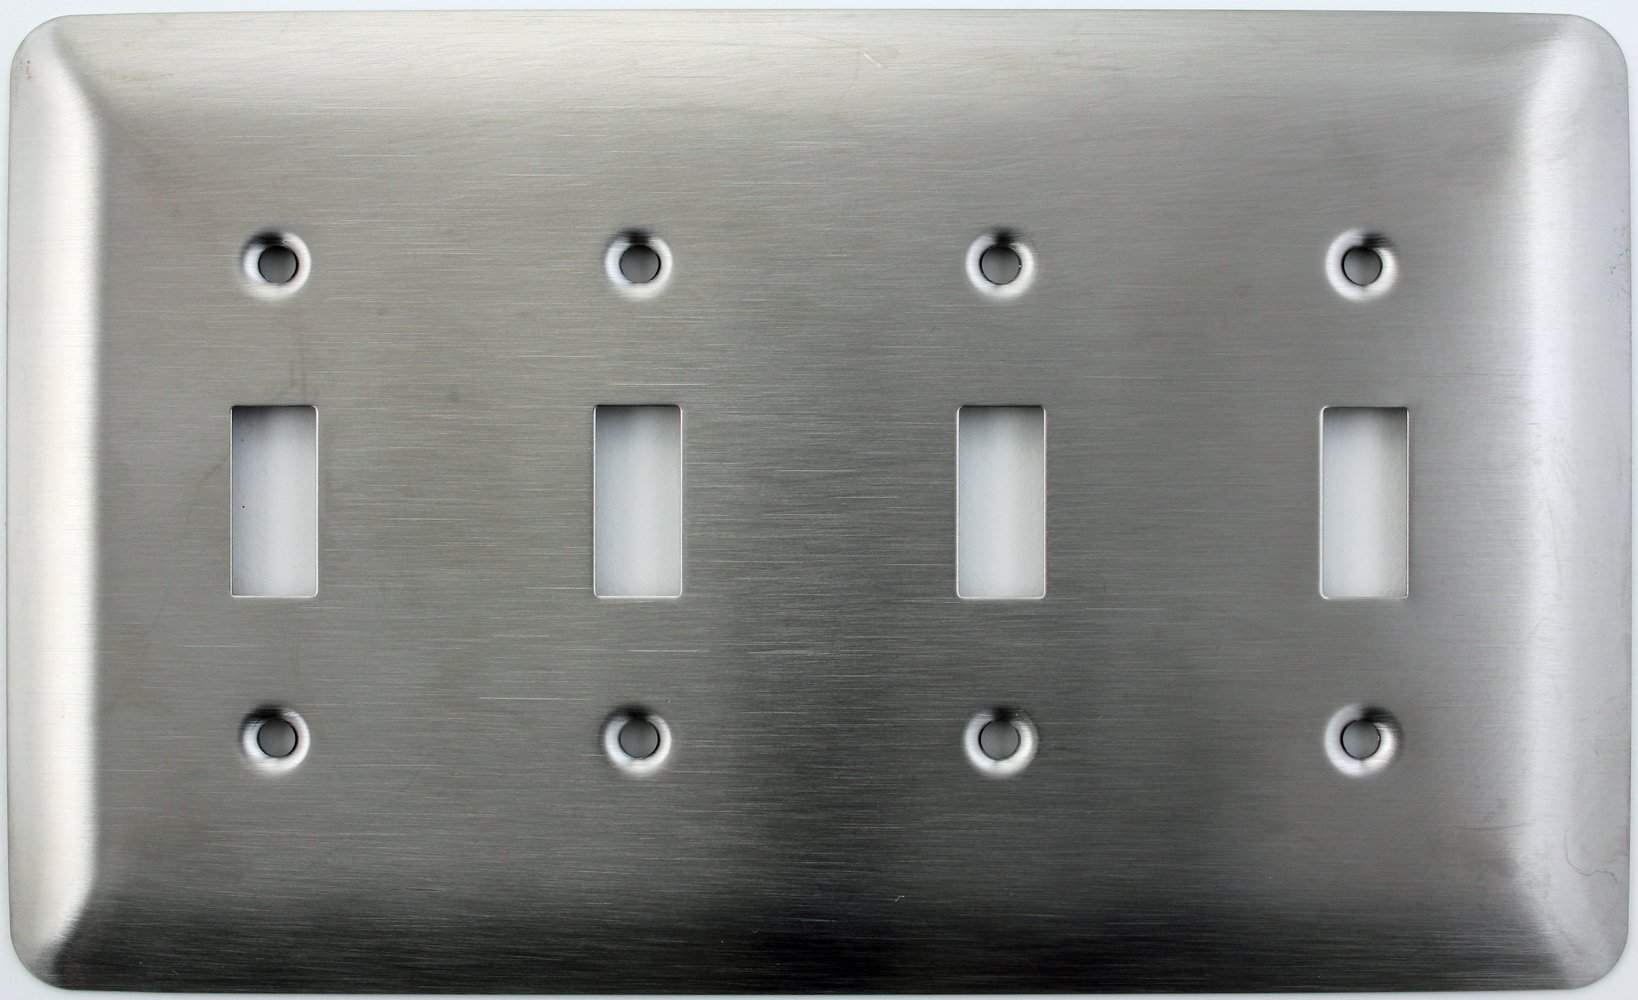 Mulberry Princess Style Satin Stainless Steel 4 Gang Toggle Light Switch Wall Plate